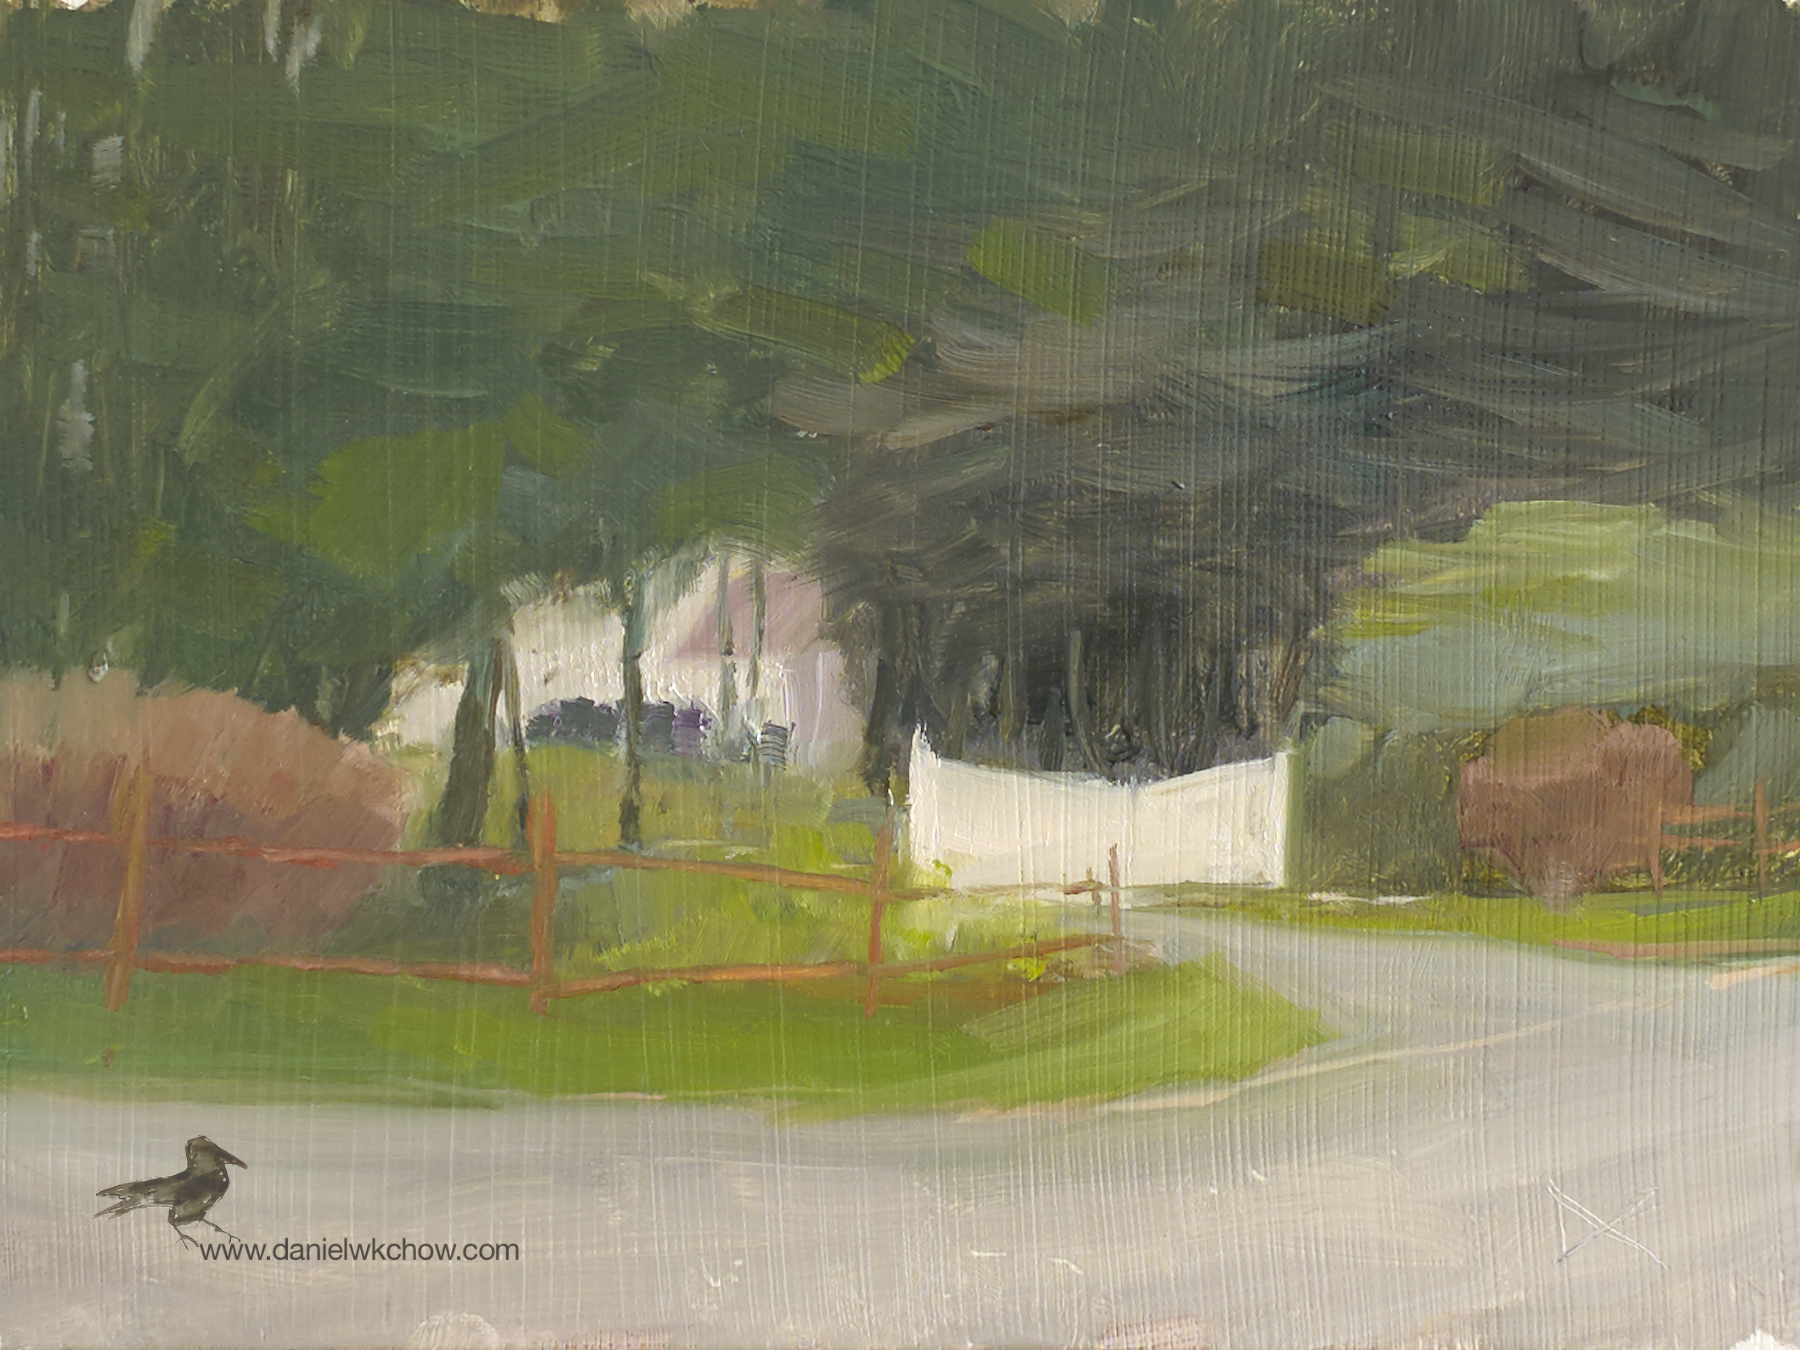 The White Gate. Greenville, Delaware. Oil on Panel, 6 by 8 inches. $225.